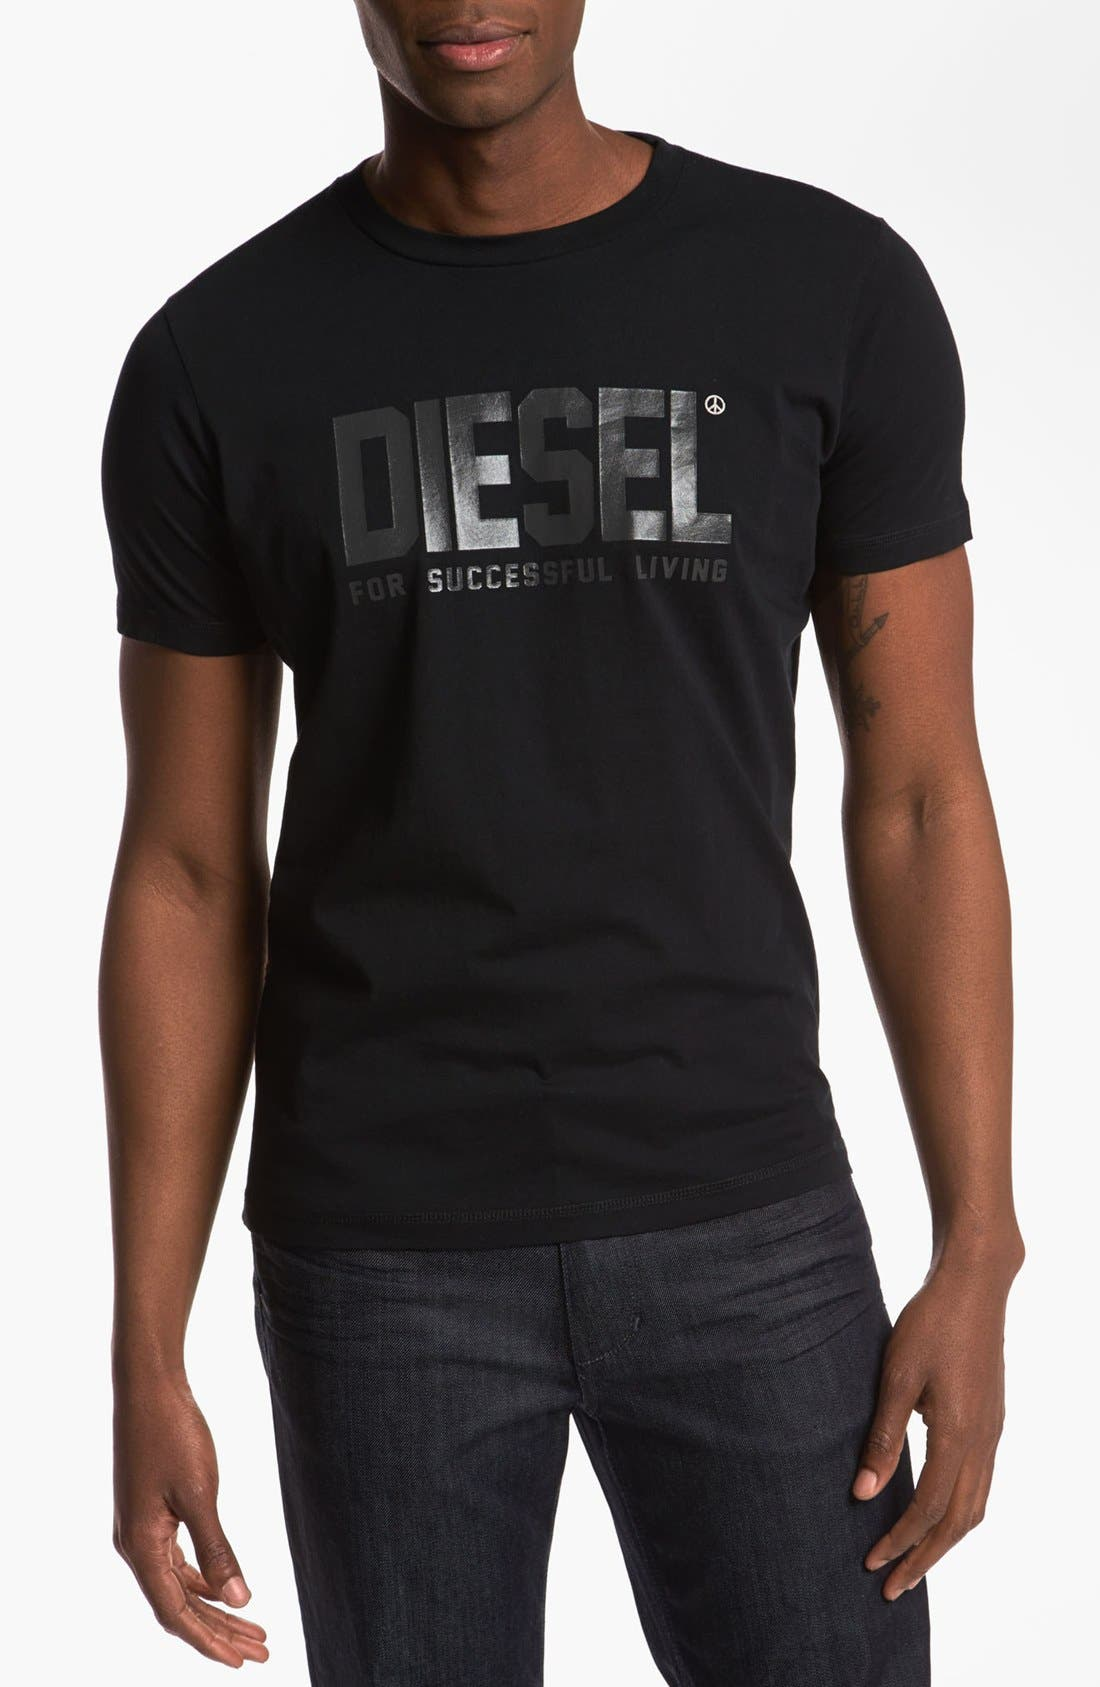 Alternate Image 1 Selected - DIESEL® 'T-Life' T-Shirt